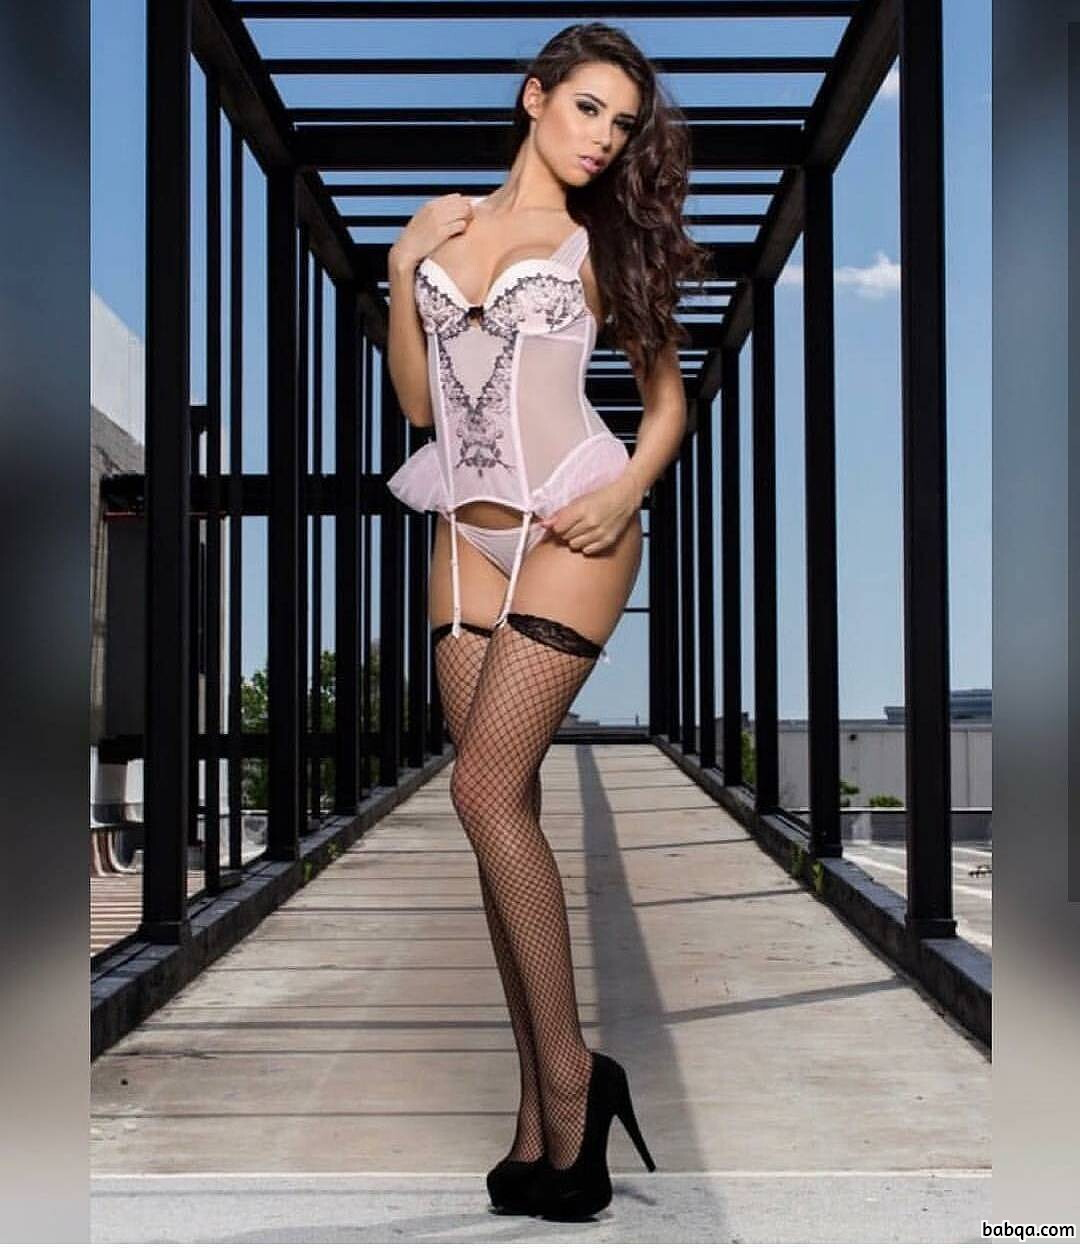 sexy teen lingerie and sexy stockings and high heels